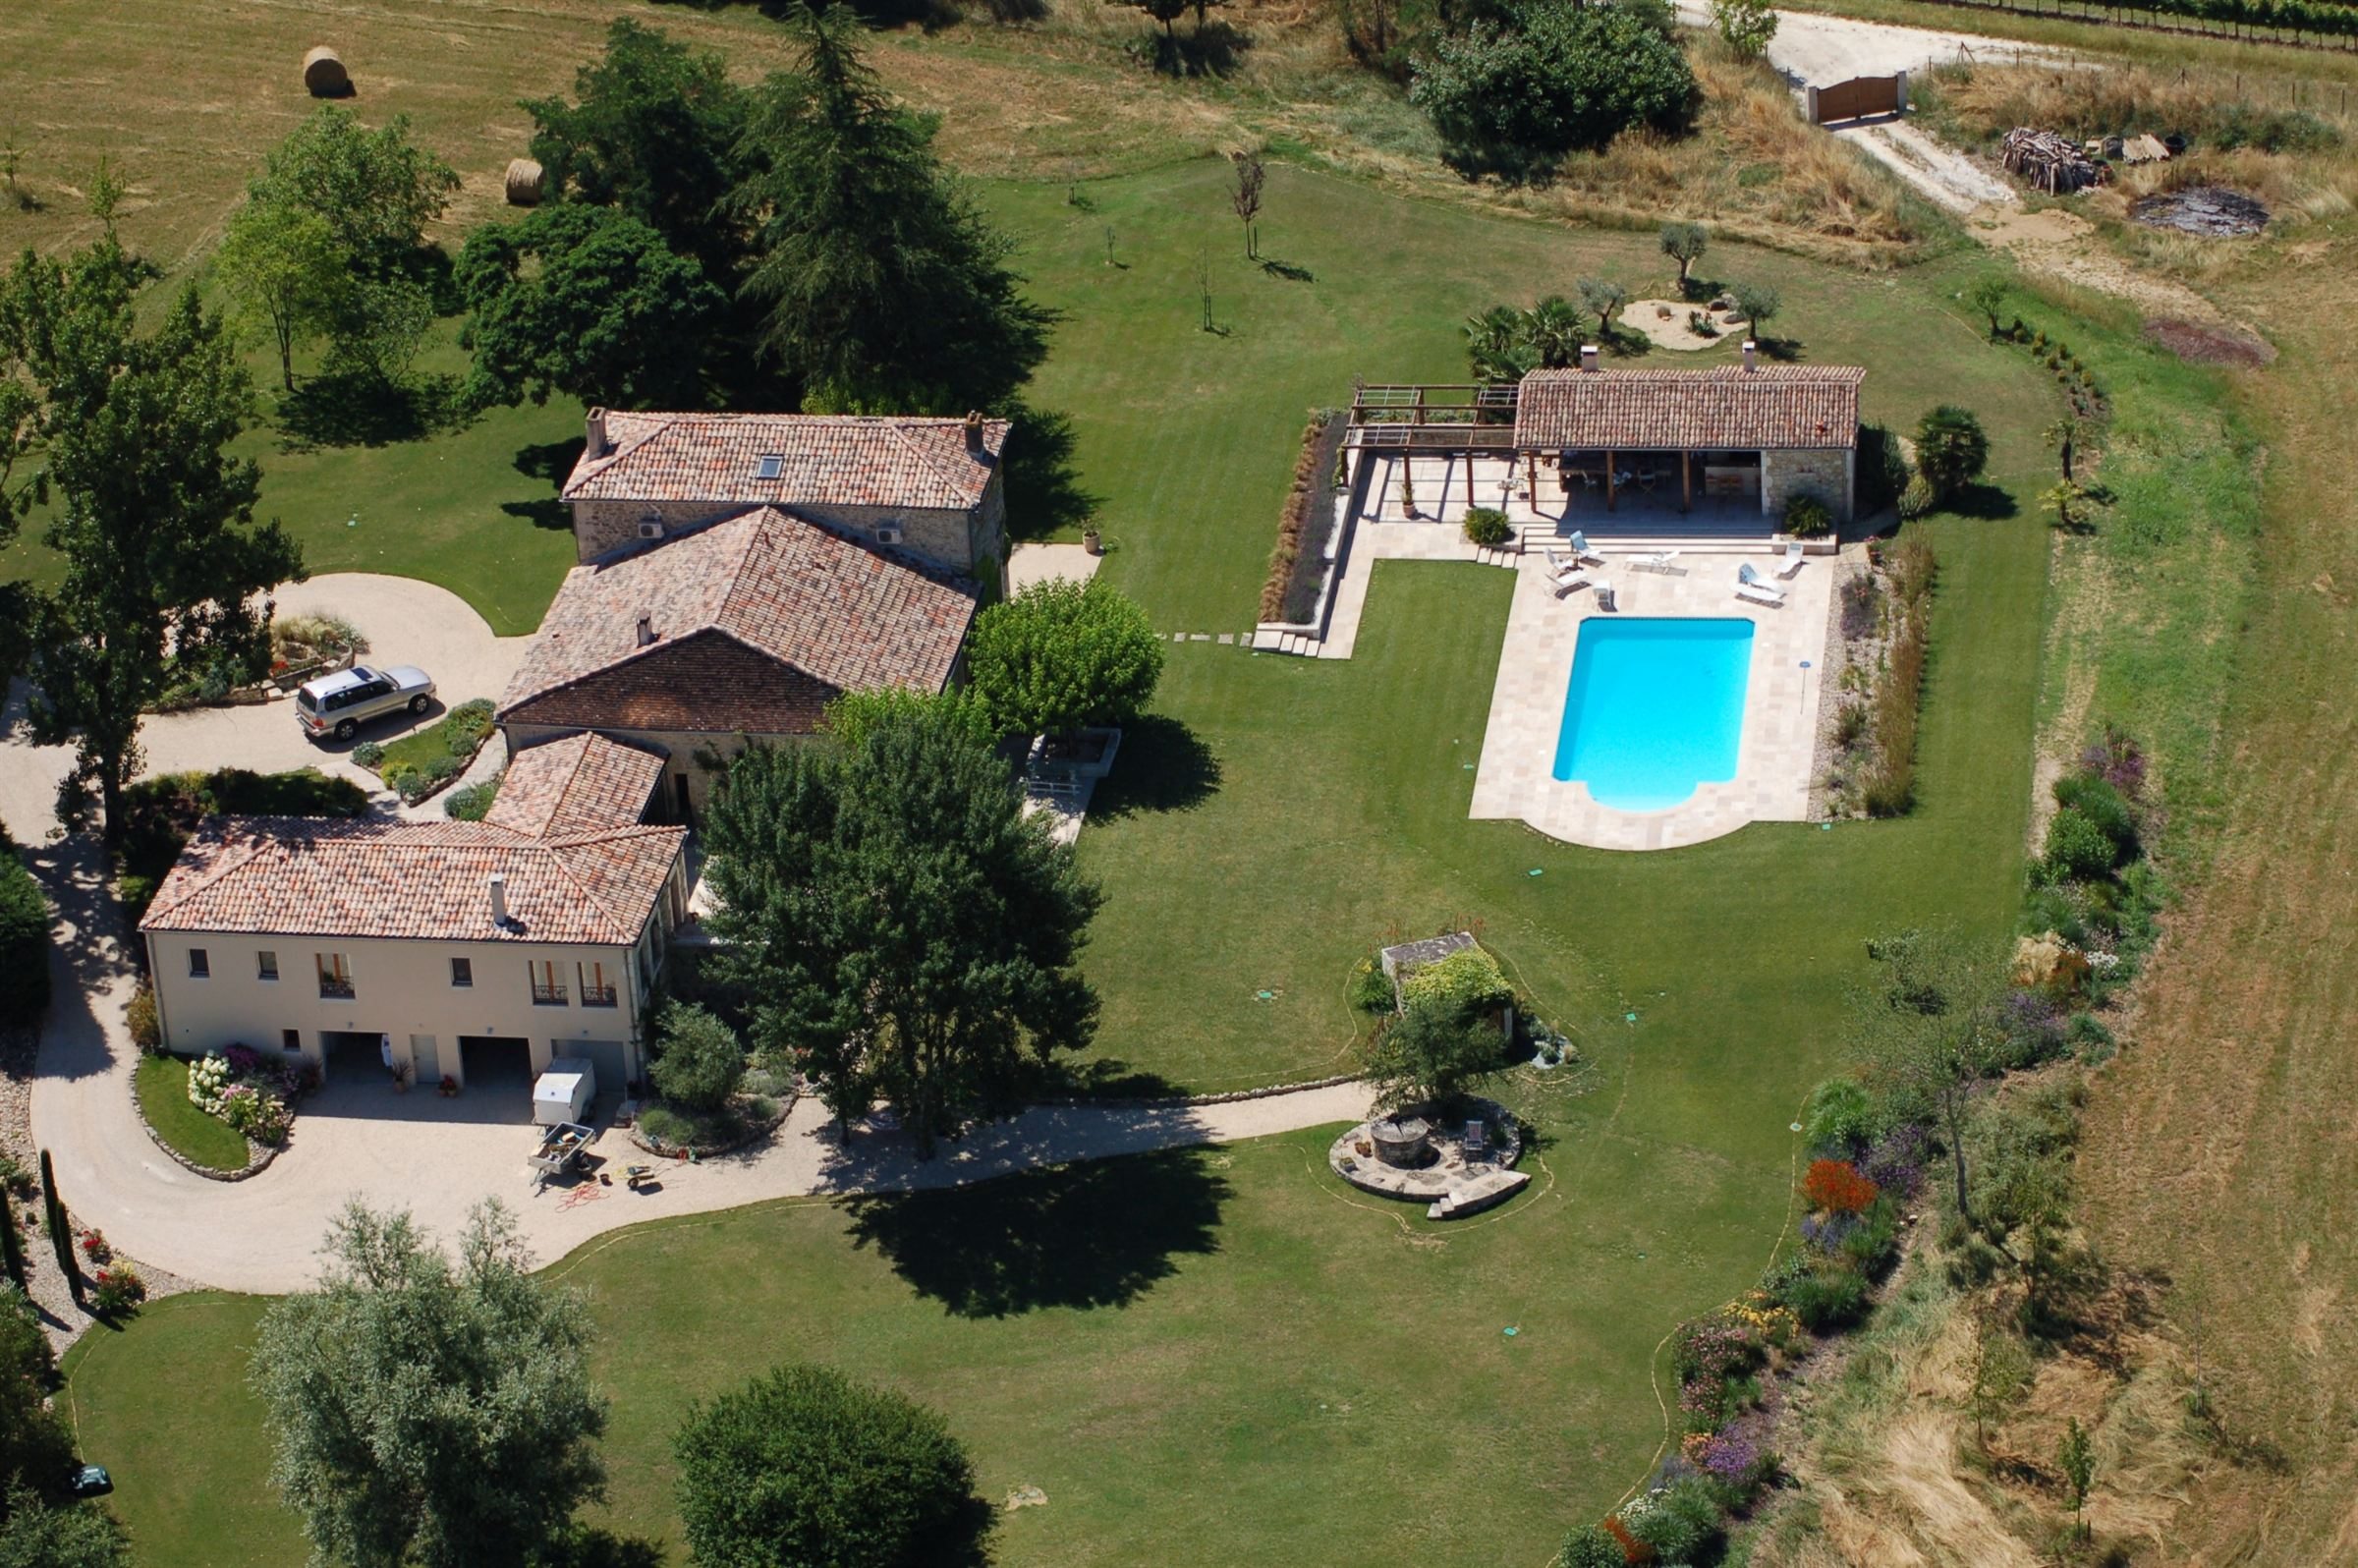 sales property at 50 MN BORDEAUX - IDEAL HOLIDAY HOME - BUCOLIC SETTING